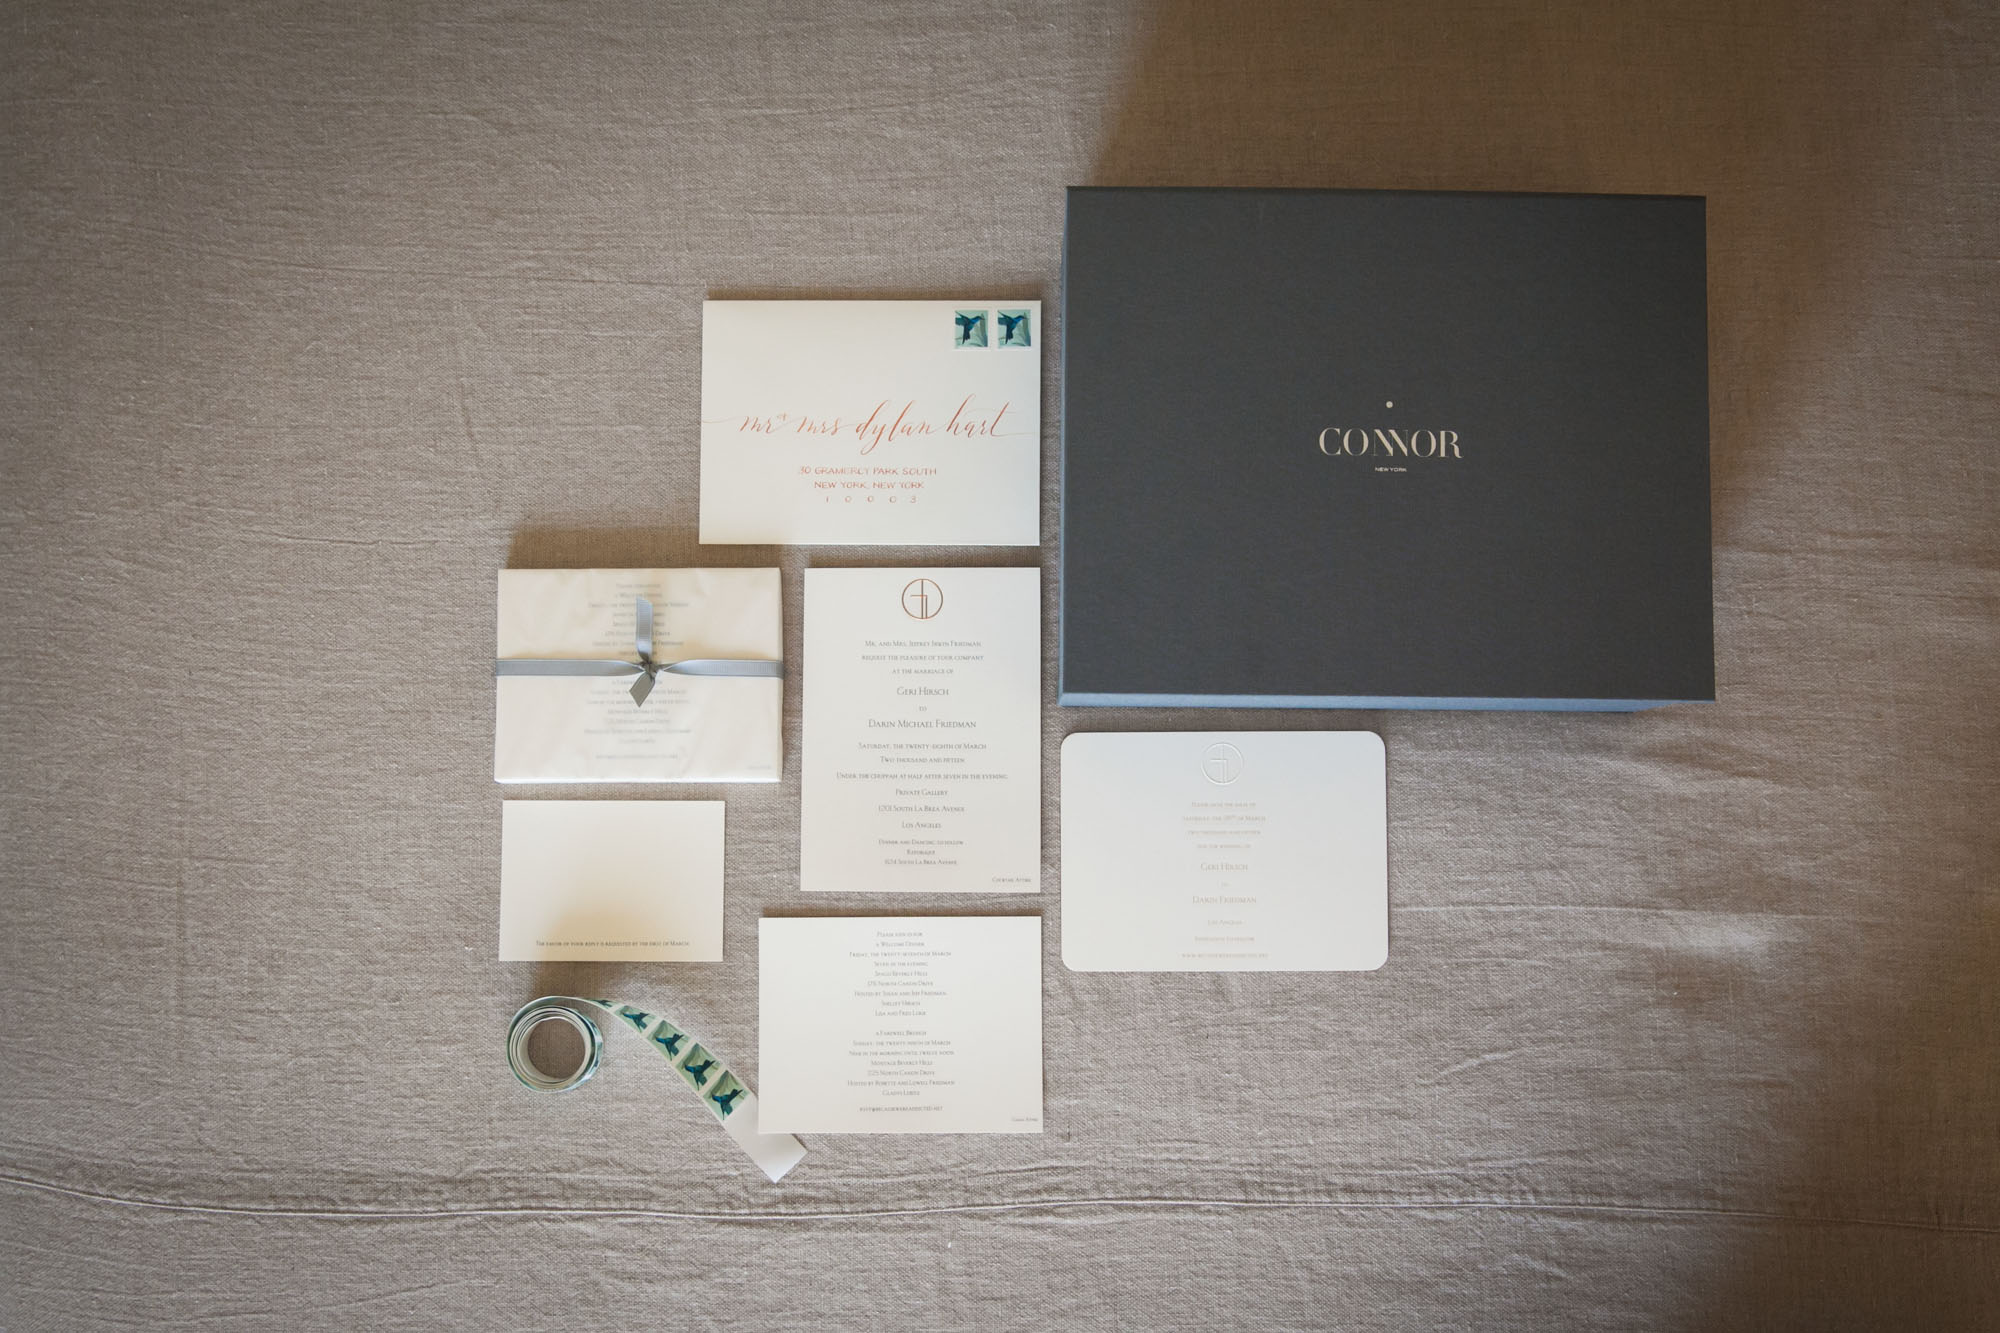 bespoke wedding invitations connor stationery wedding stationery Our Bespoke Wedding Invitations by Connor Stationery